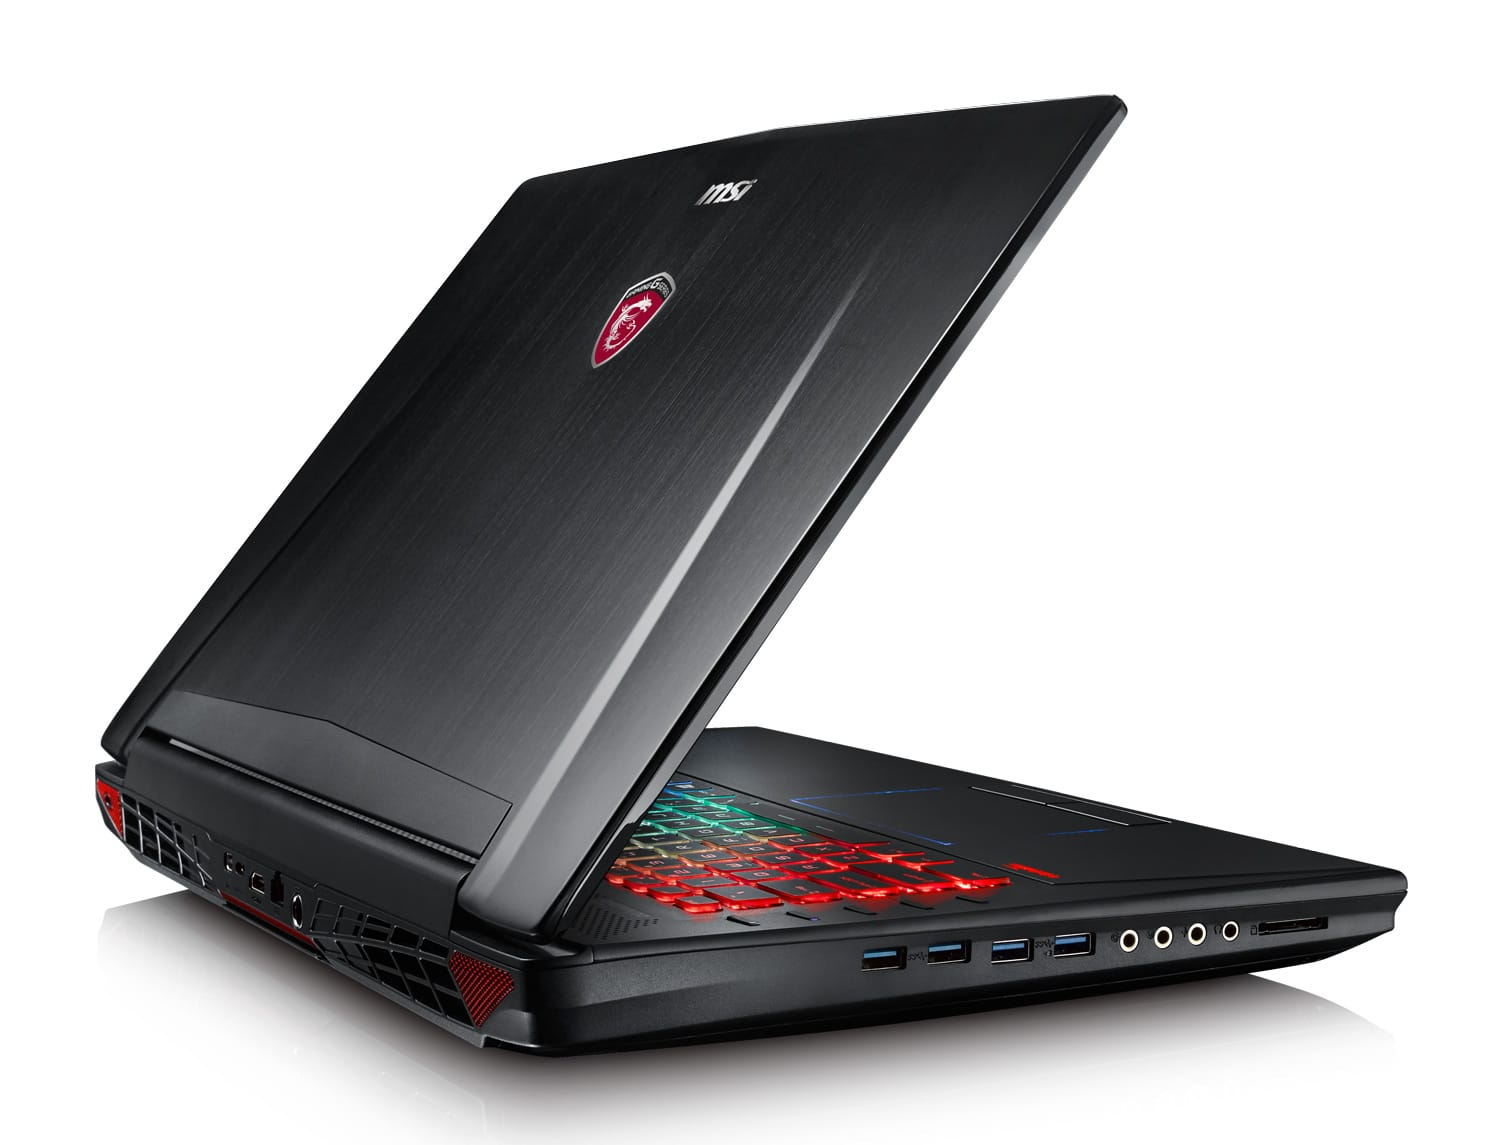 MSI GT72VR 7RE-496, PC portable 17 pouces SSD 256 GTX 1070 Kaby 2299€